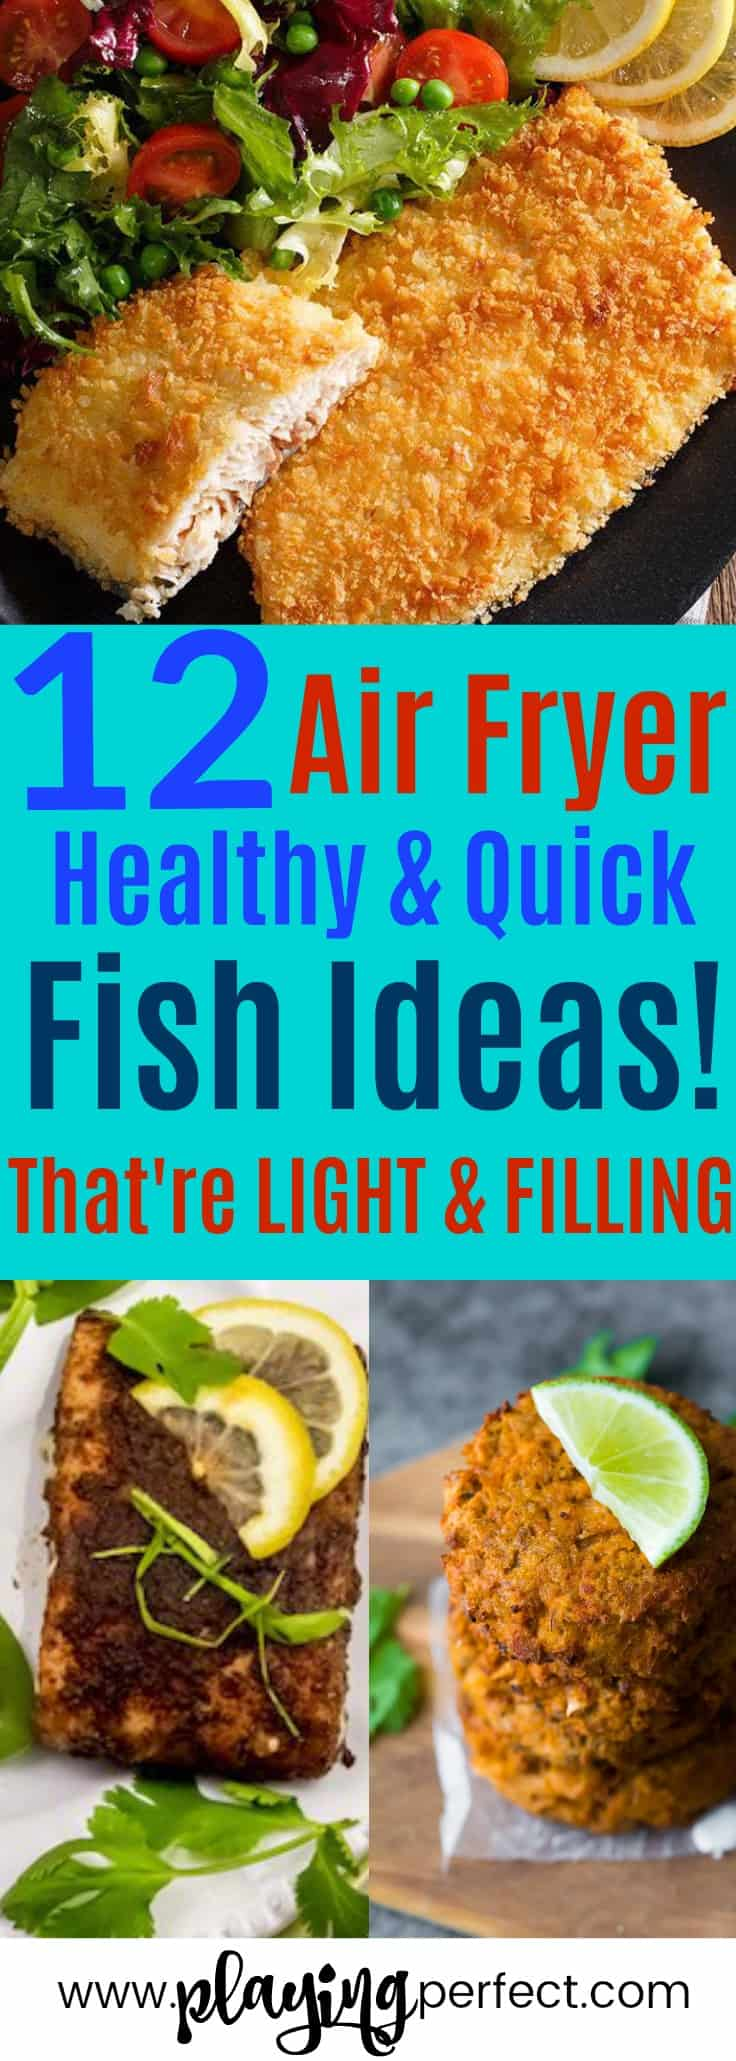 Air fryer fish recipes! If you're looking for some healthy air fryer recipes that are filling and light, you're going to love these easy air fryer recipes! Click over to discover the best fish air fryer recipes that will be the best air fryer recipes ever! FREE printable pack too! | playingperfect.com |